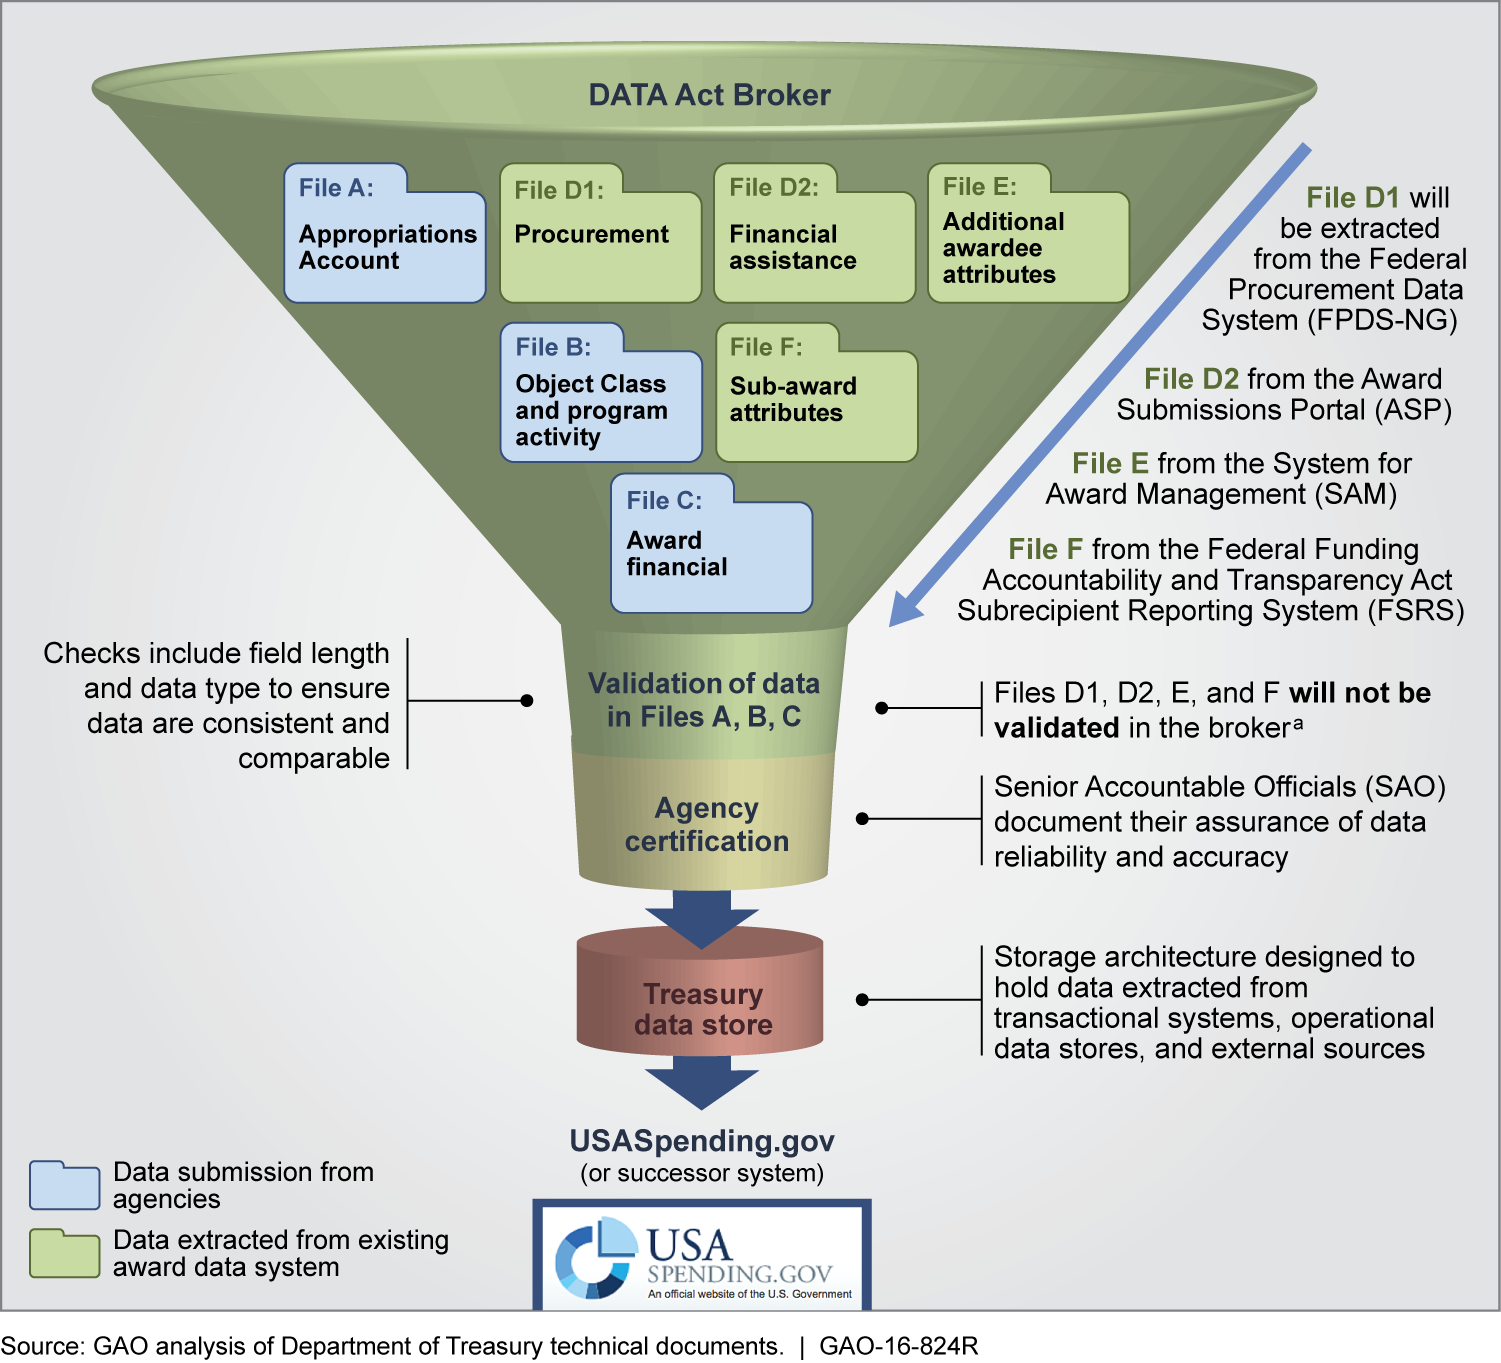 Figure 1: Operation of the Data Act Broker System